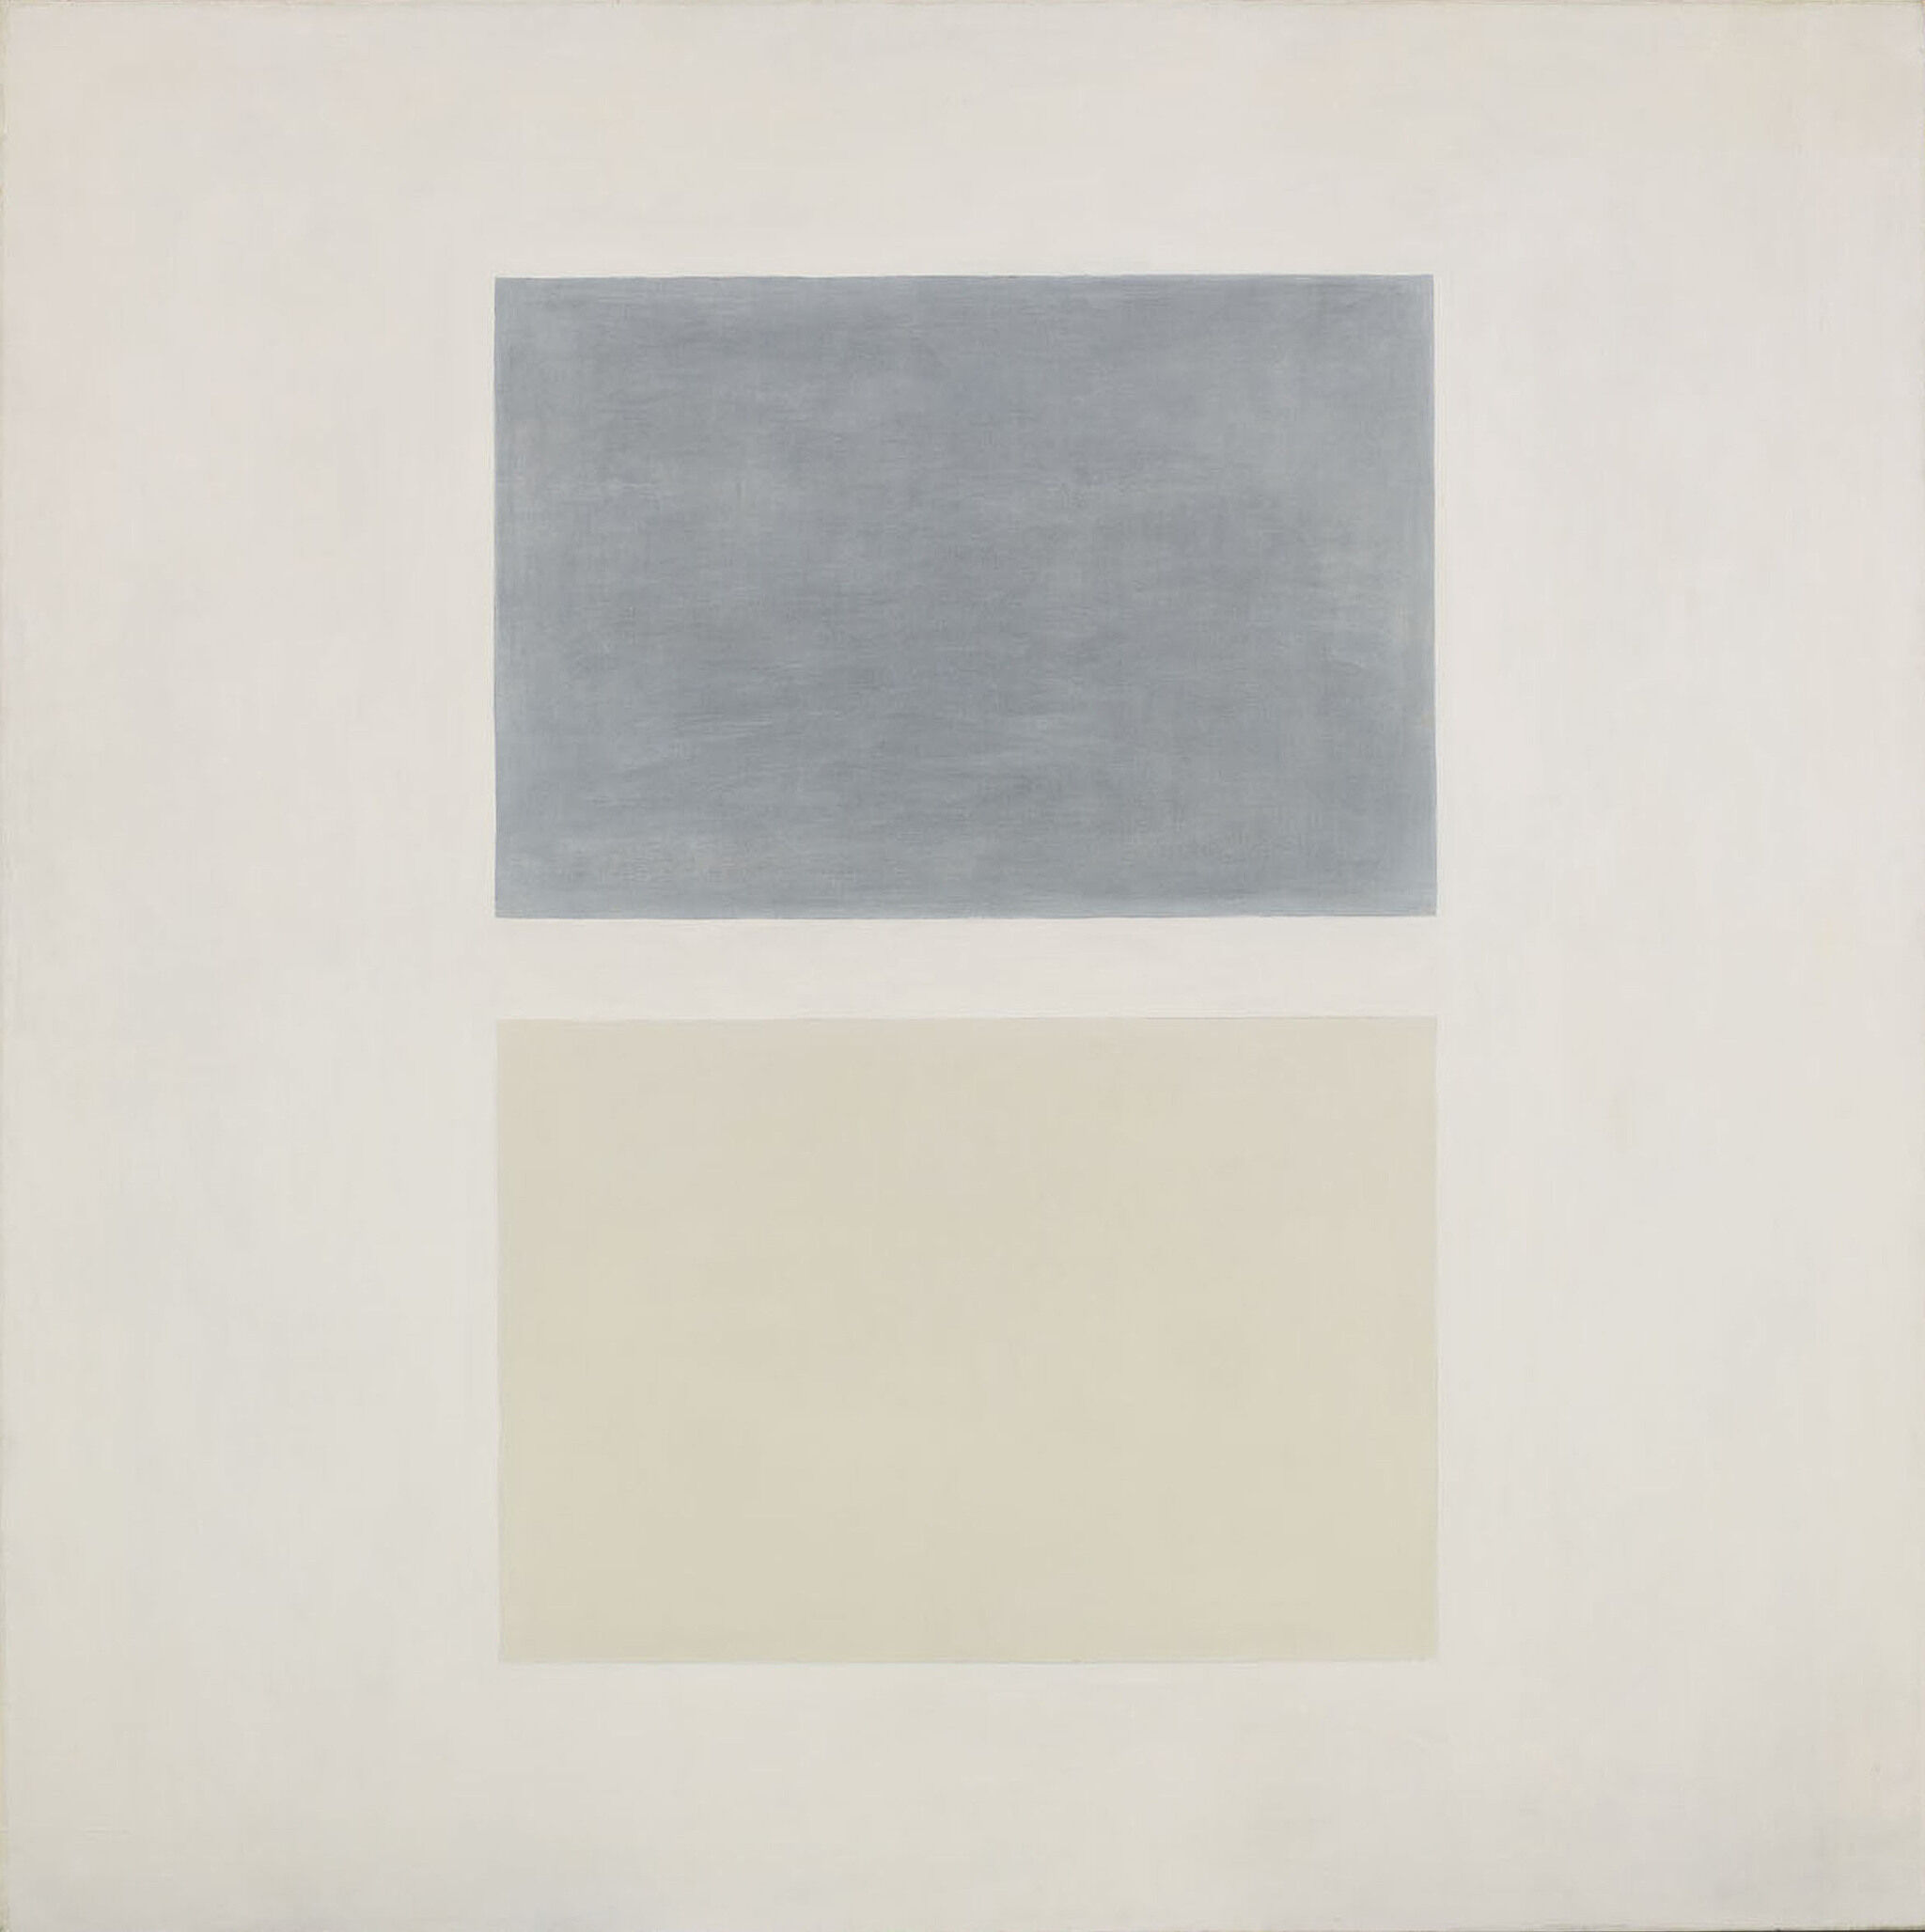 A painting of two rectangles.